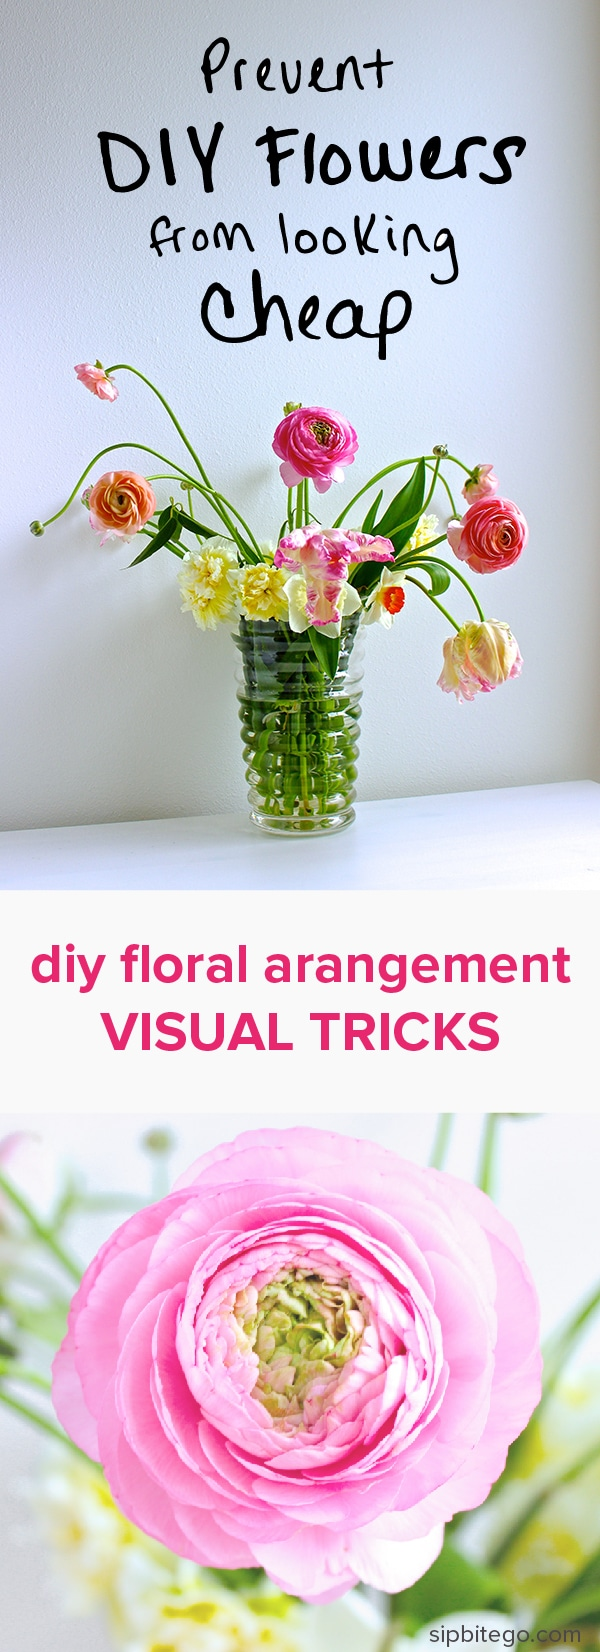 How to prevent a simple floral arrangement from looking cheap | Sip ...